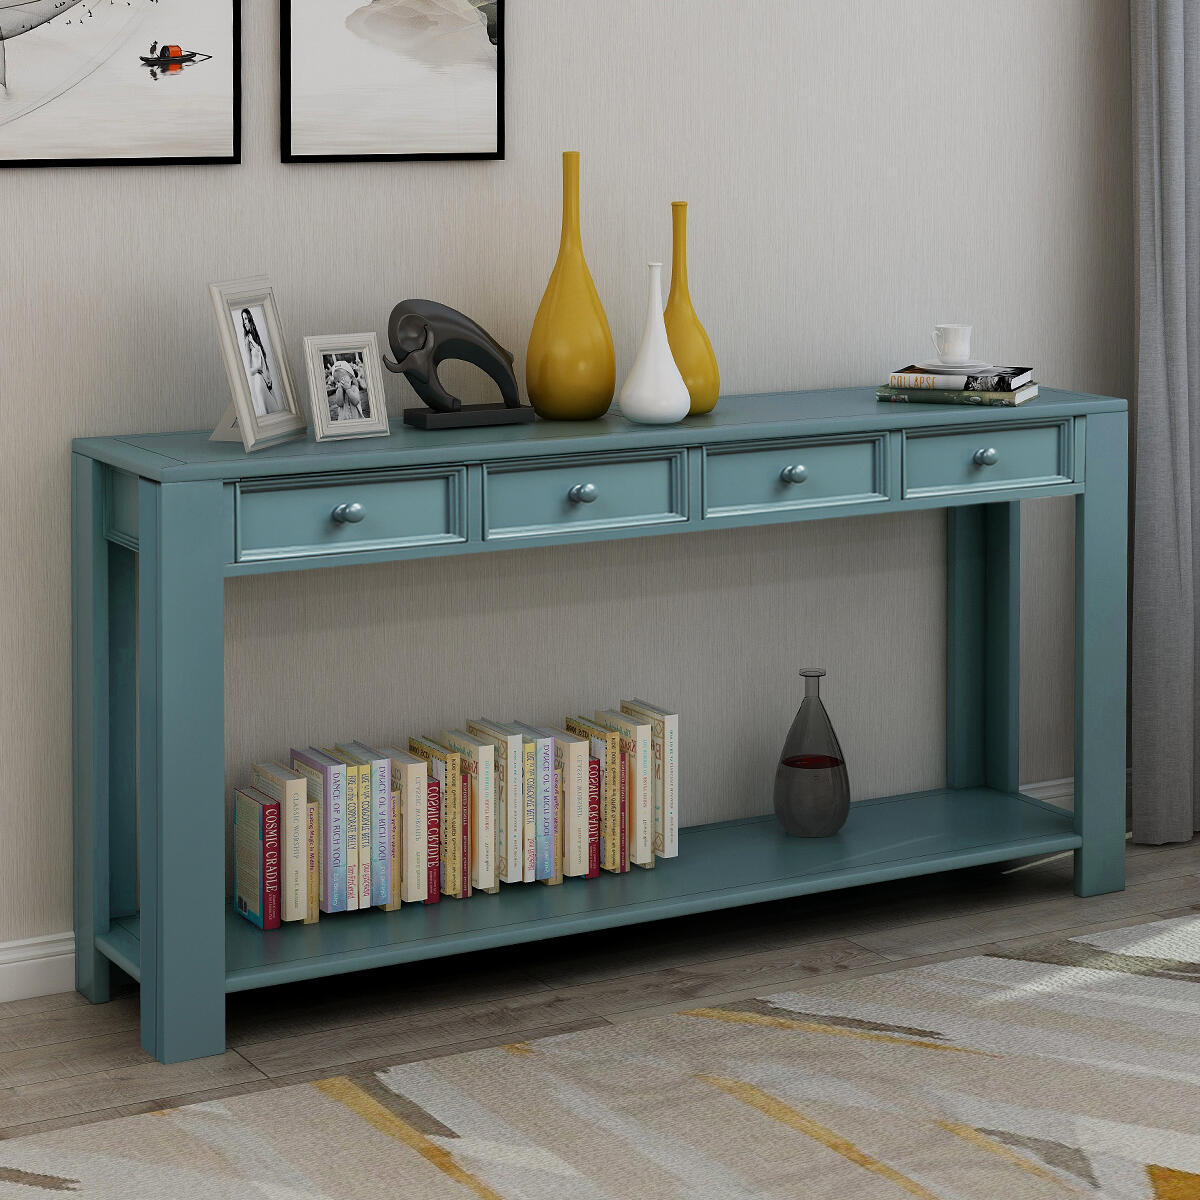 Shop hawkinswoodshop.com for discounted solid wood & metal modern, traditional, contemporary, custom & farmhouse furniture including our Long Modern Farmhouse Painted Console Table. Ask about our free nationwide freight delivery or assembly services today.